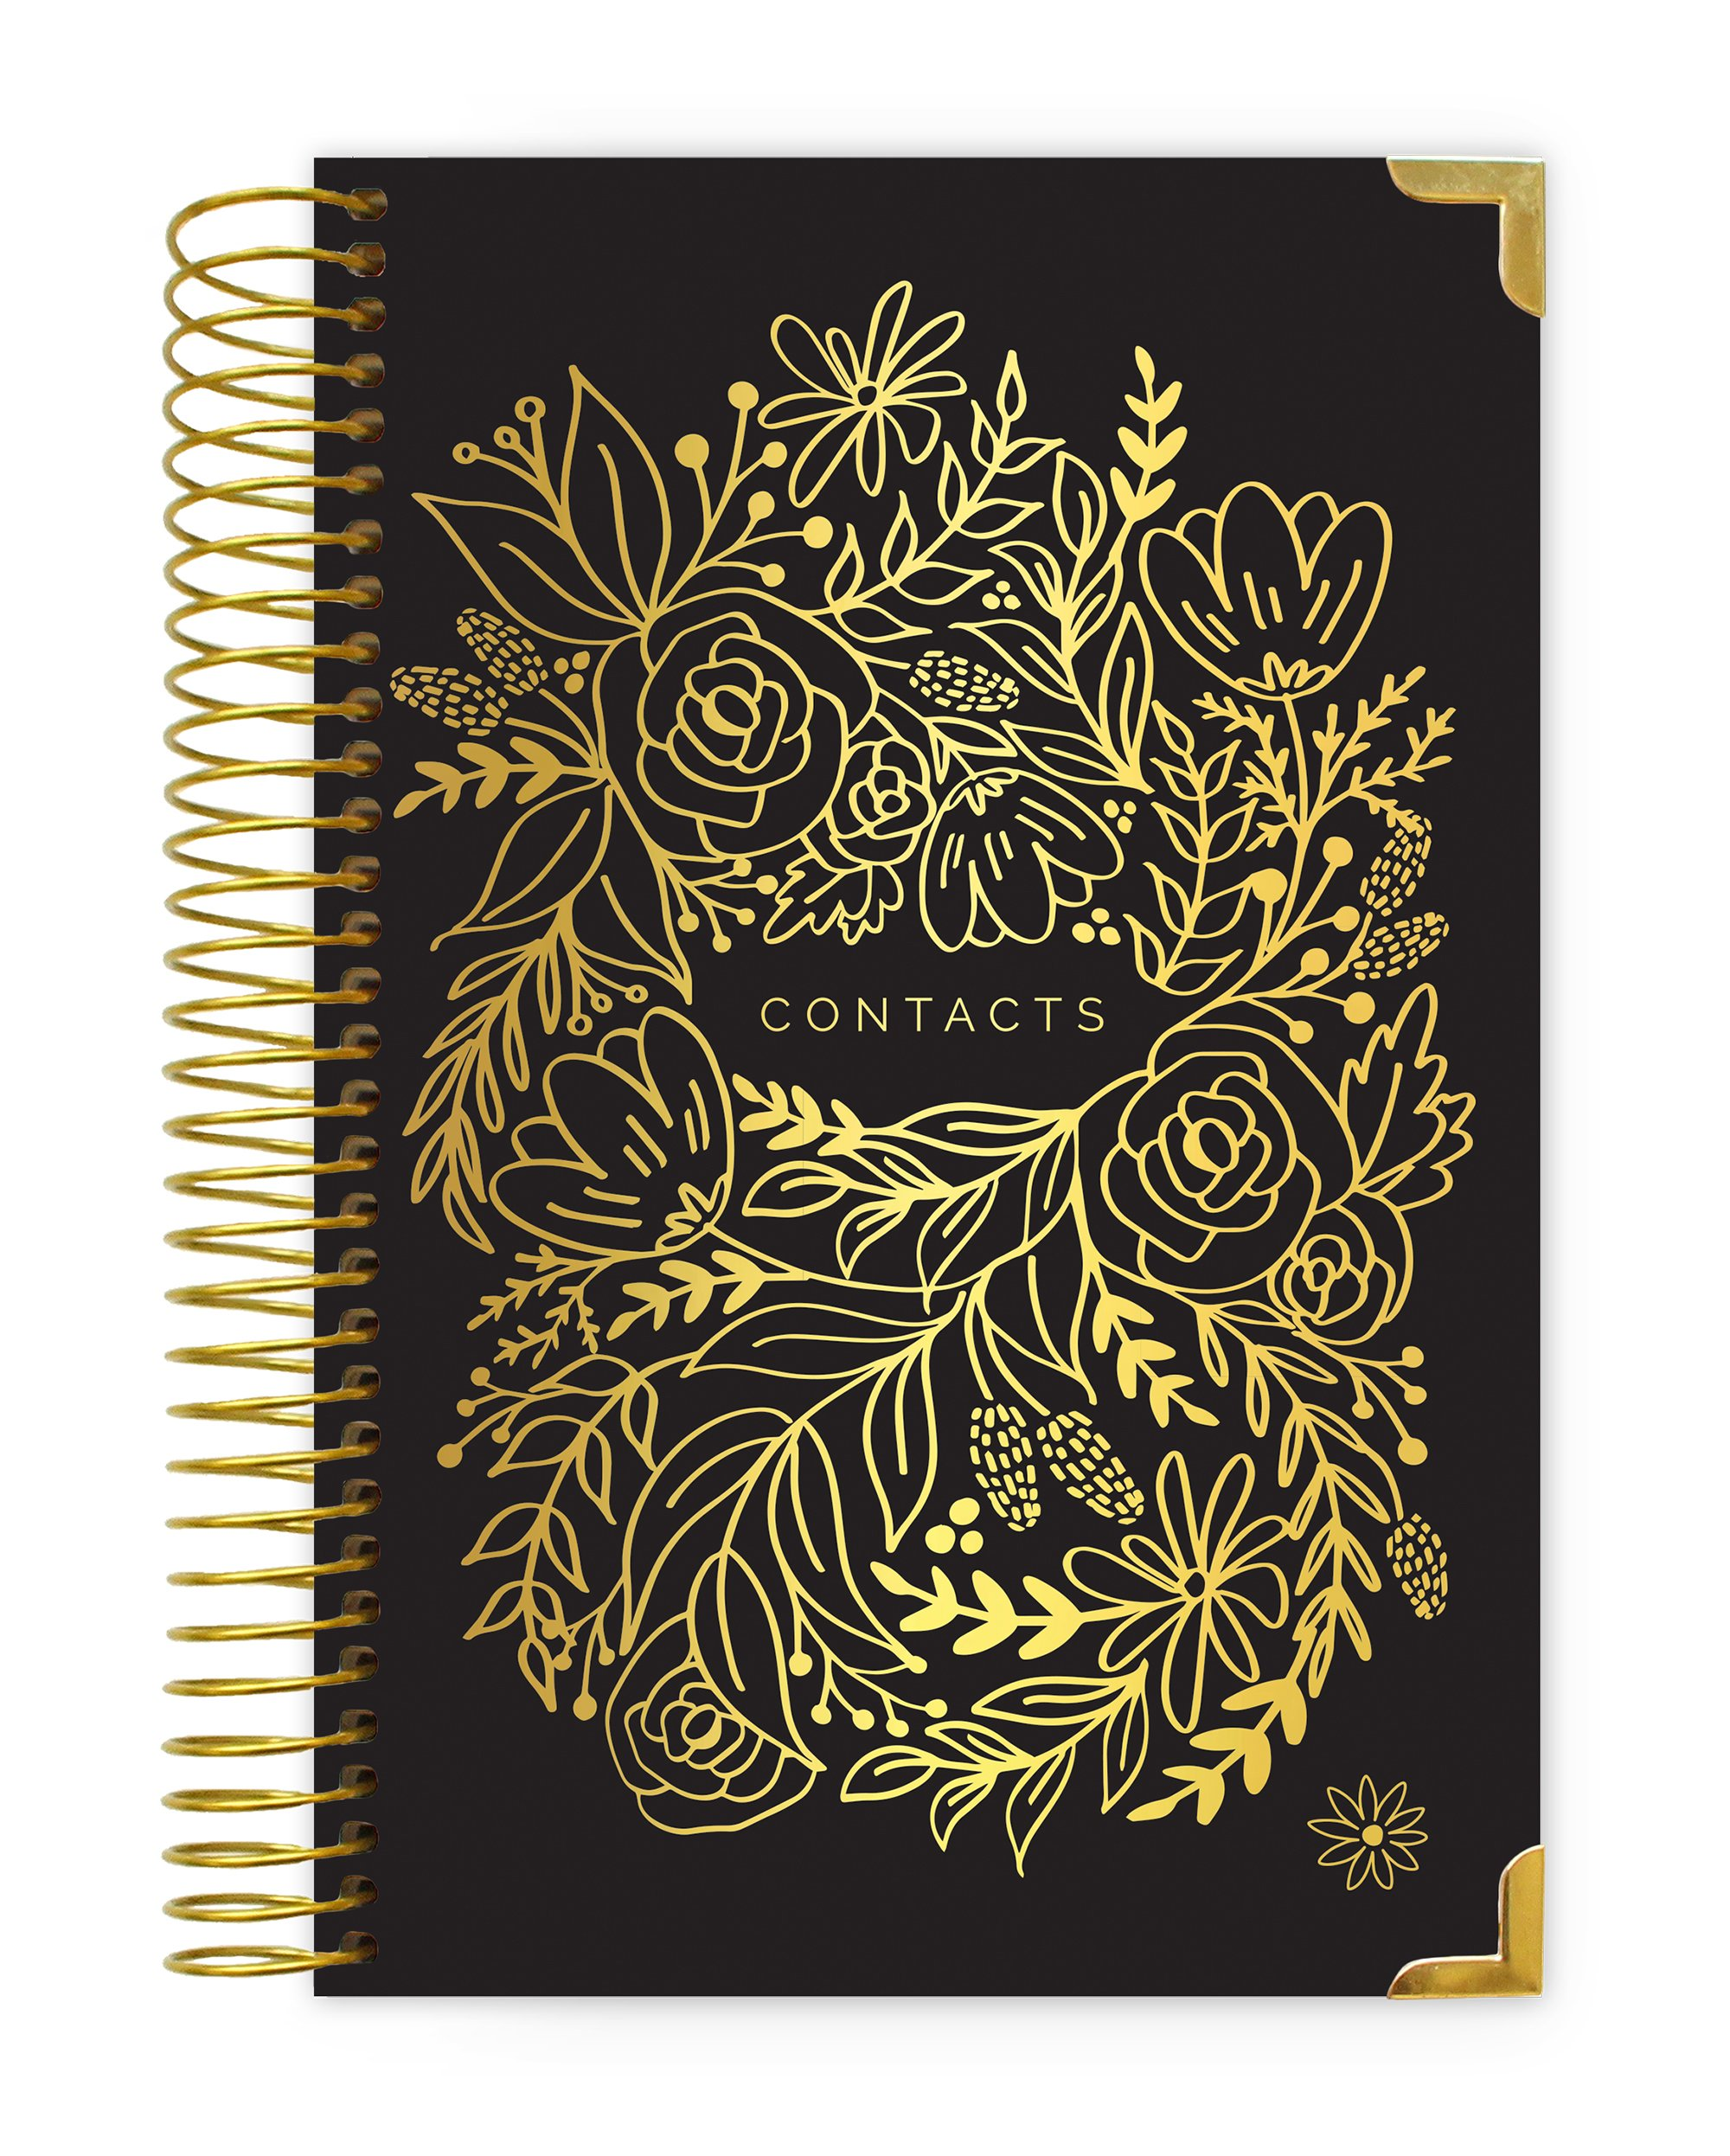 Bloom Daily Planners New Hard Cover Contacts/Address Book - 6'' x 8.25'' - Black & Gold Embroidery